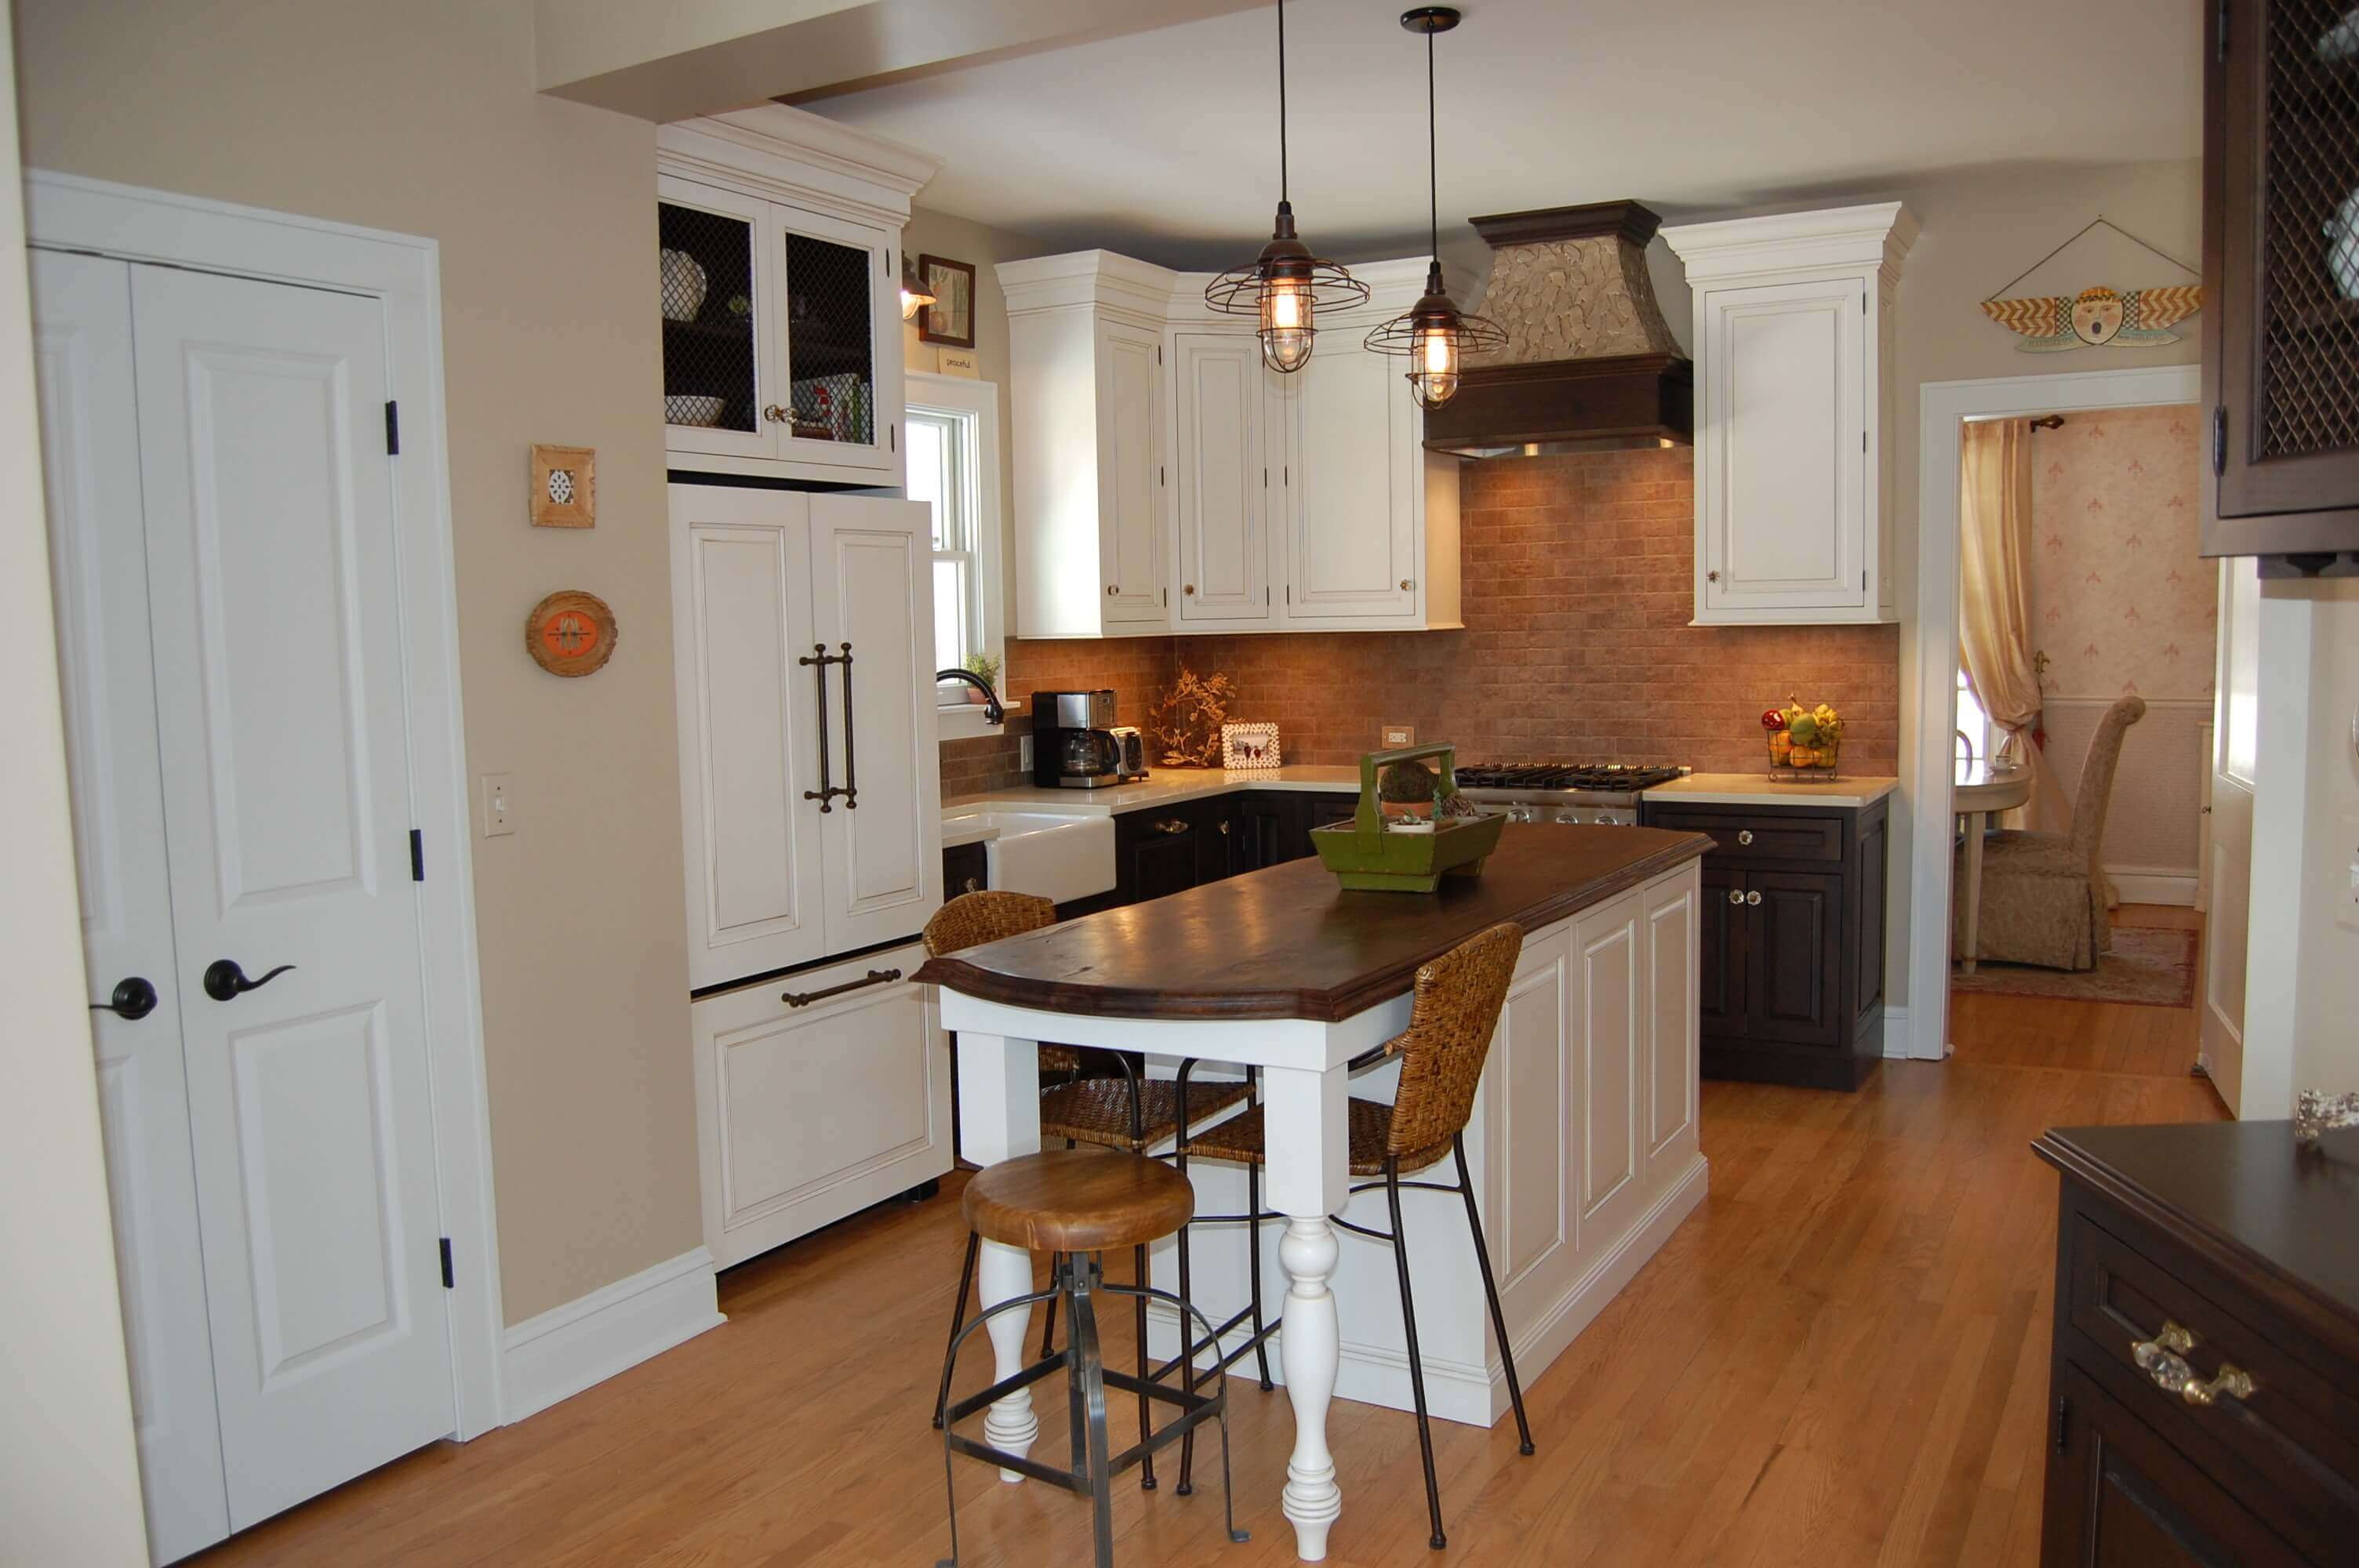 This White Kitchen With Hardwood Flooring Takes Advantage Of Small Kitchen Island Table With Stools Idea